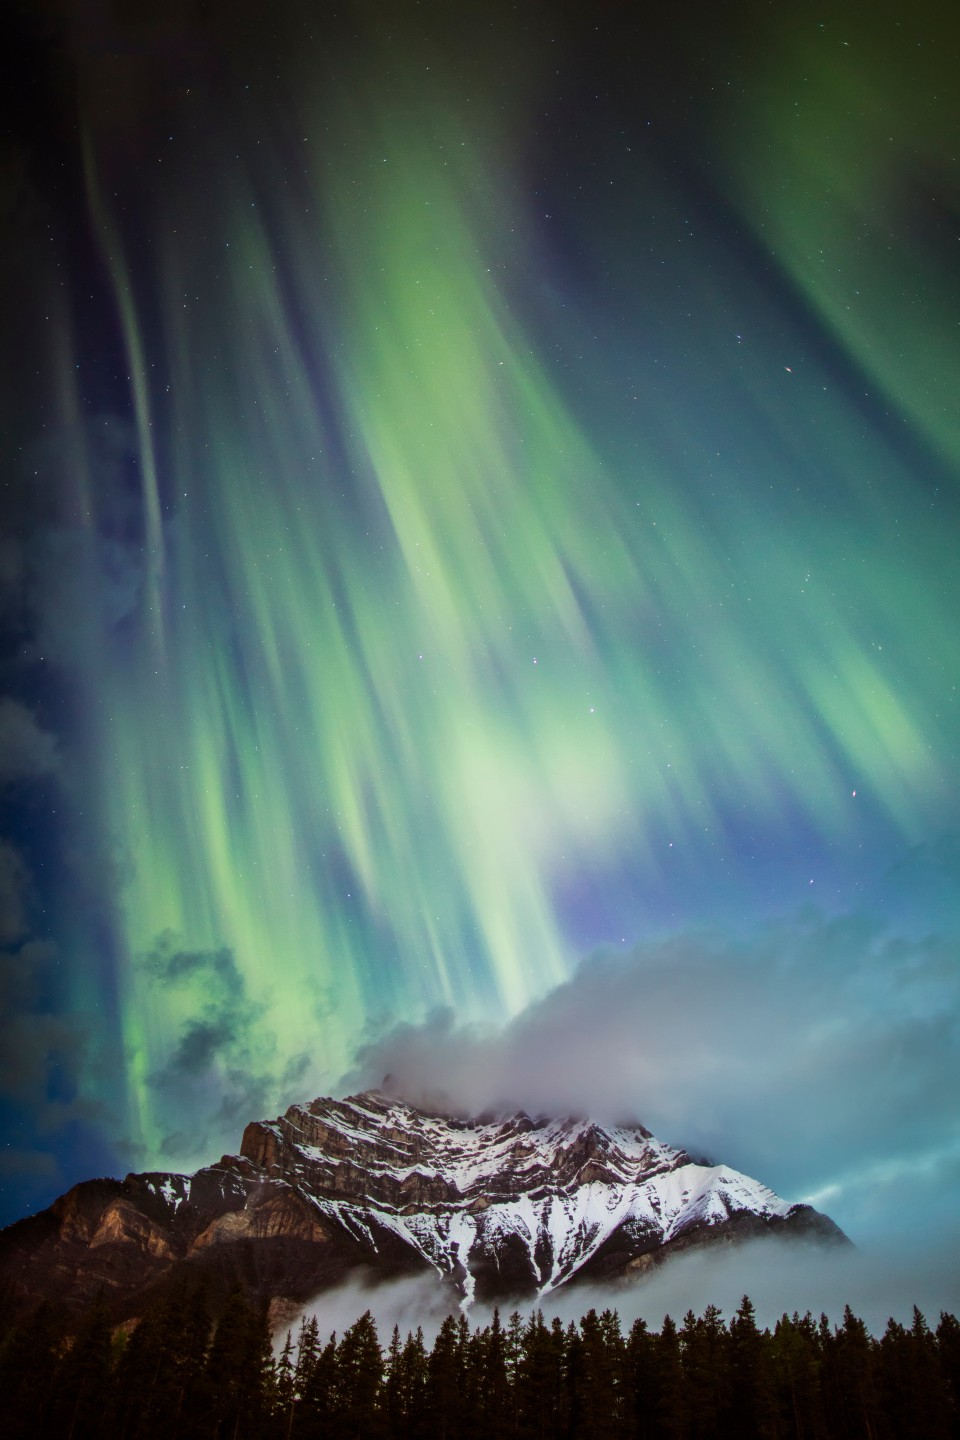 Northern_Lights_Cascade_Banff_Paul_Zizka_Vertical-960x1440.jpg